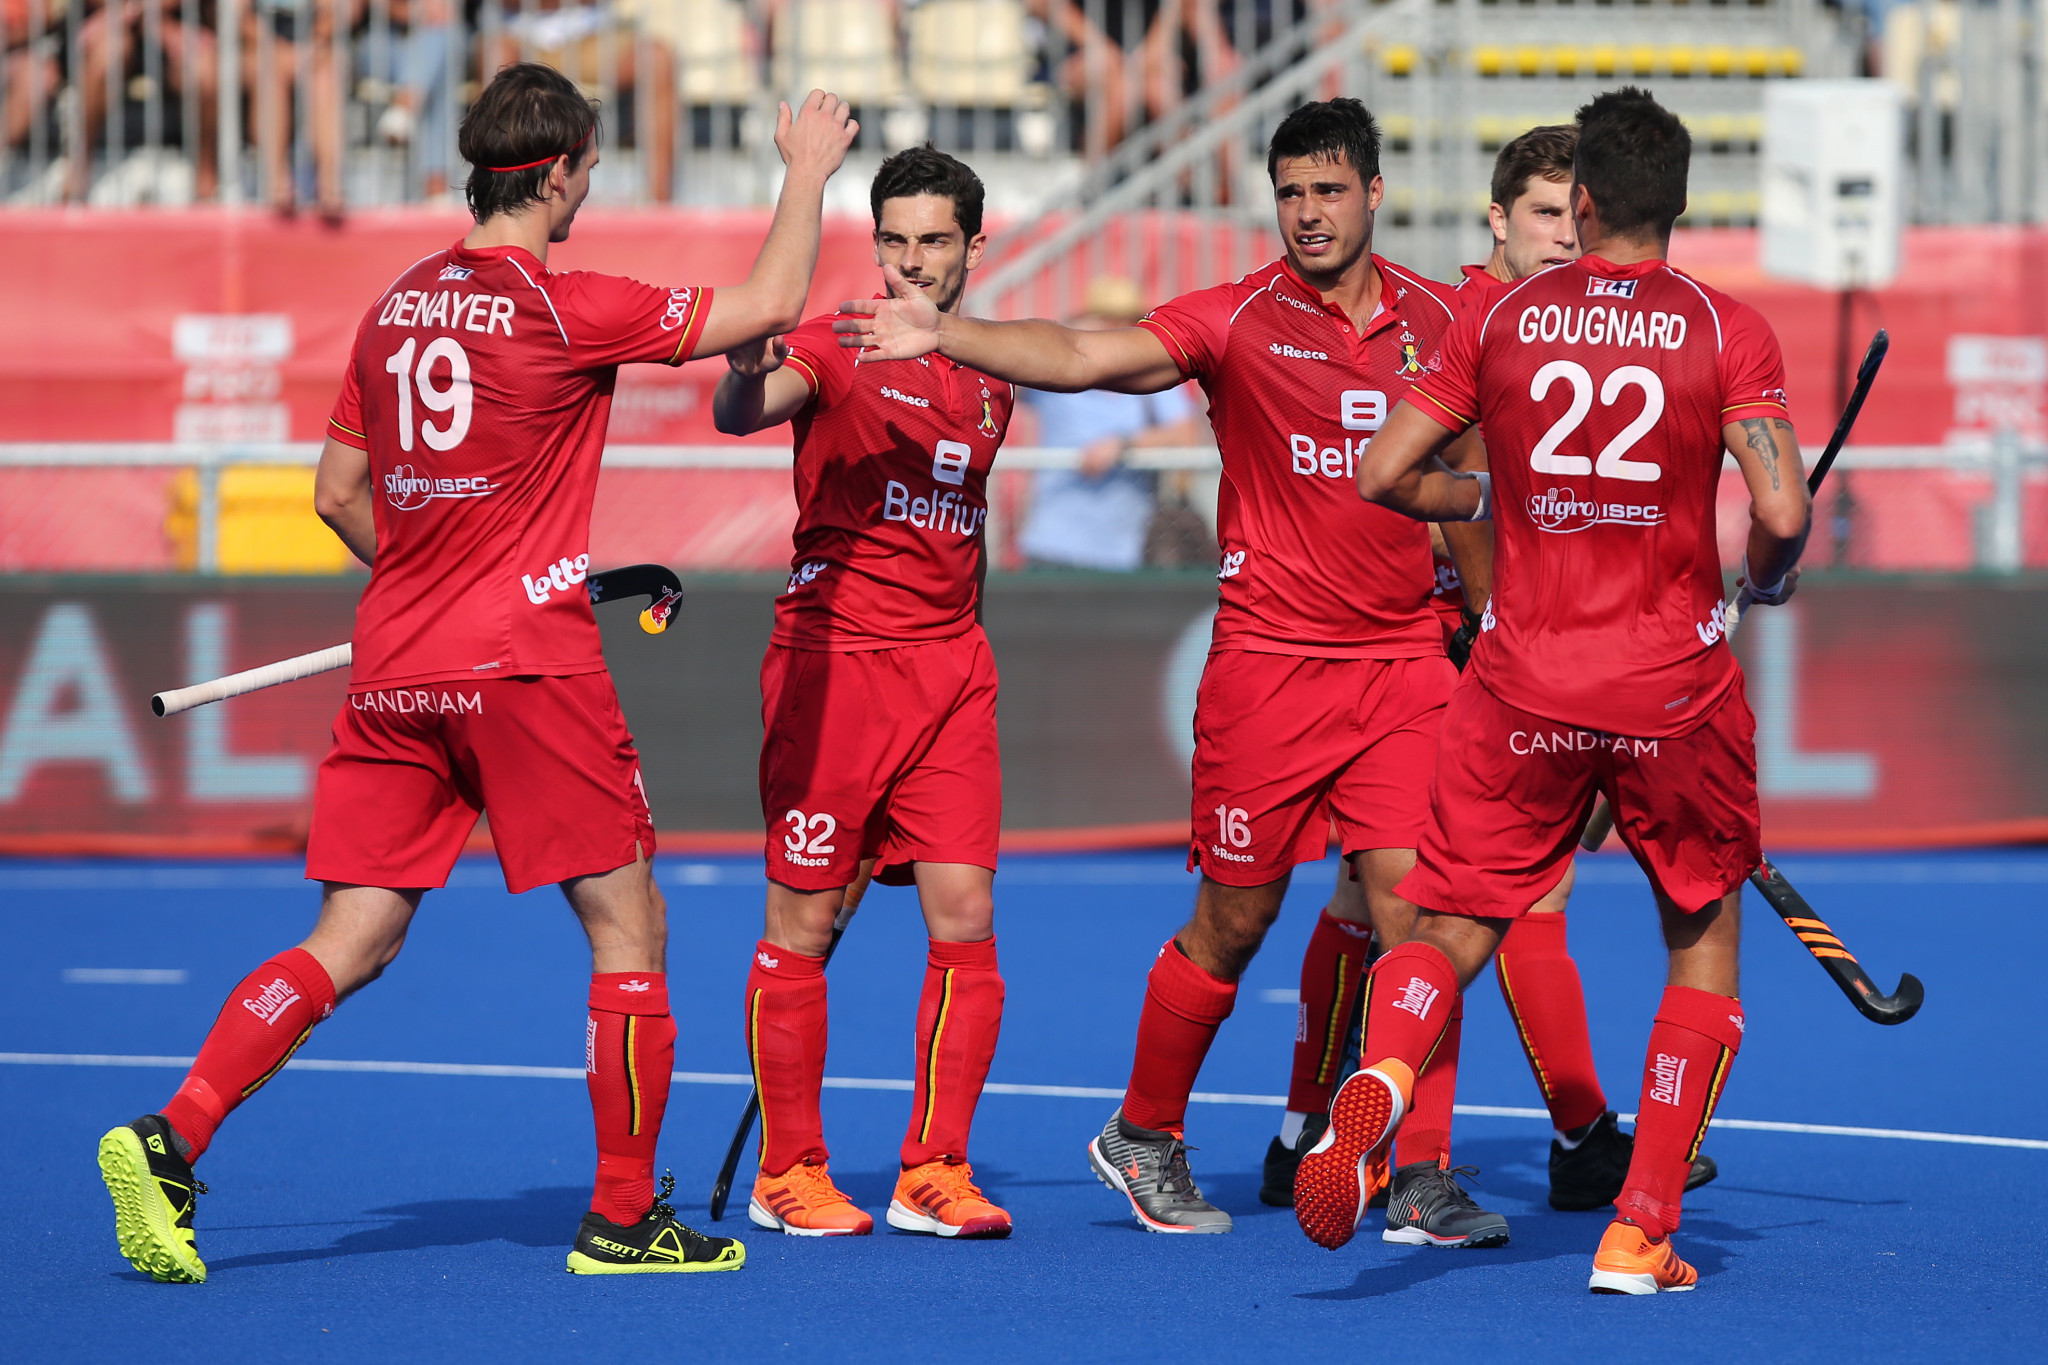 FIH Hockey Pro League to make return after six months with Germany hosting Belgium